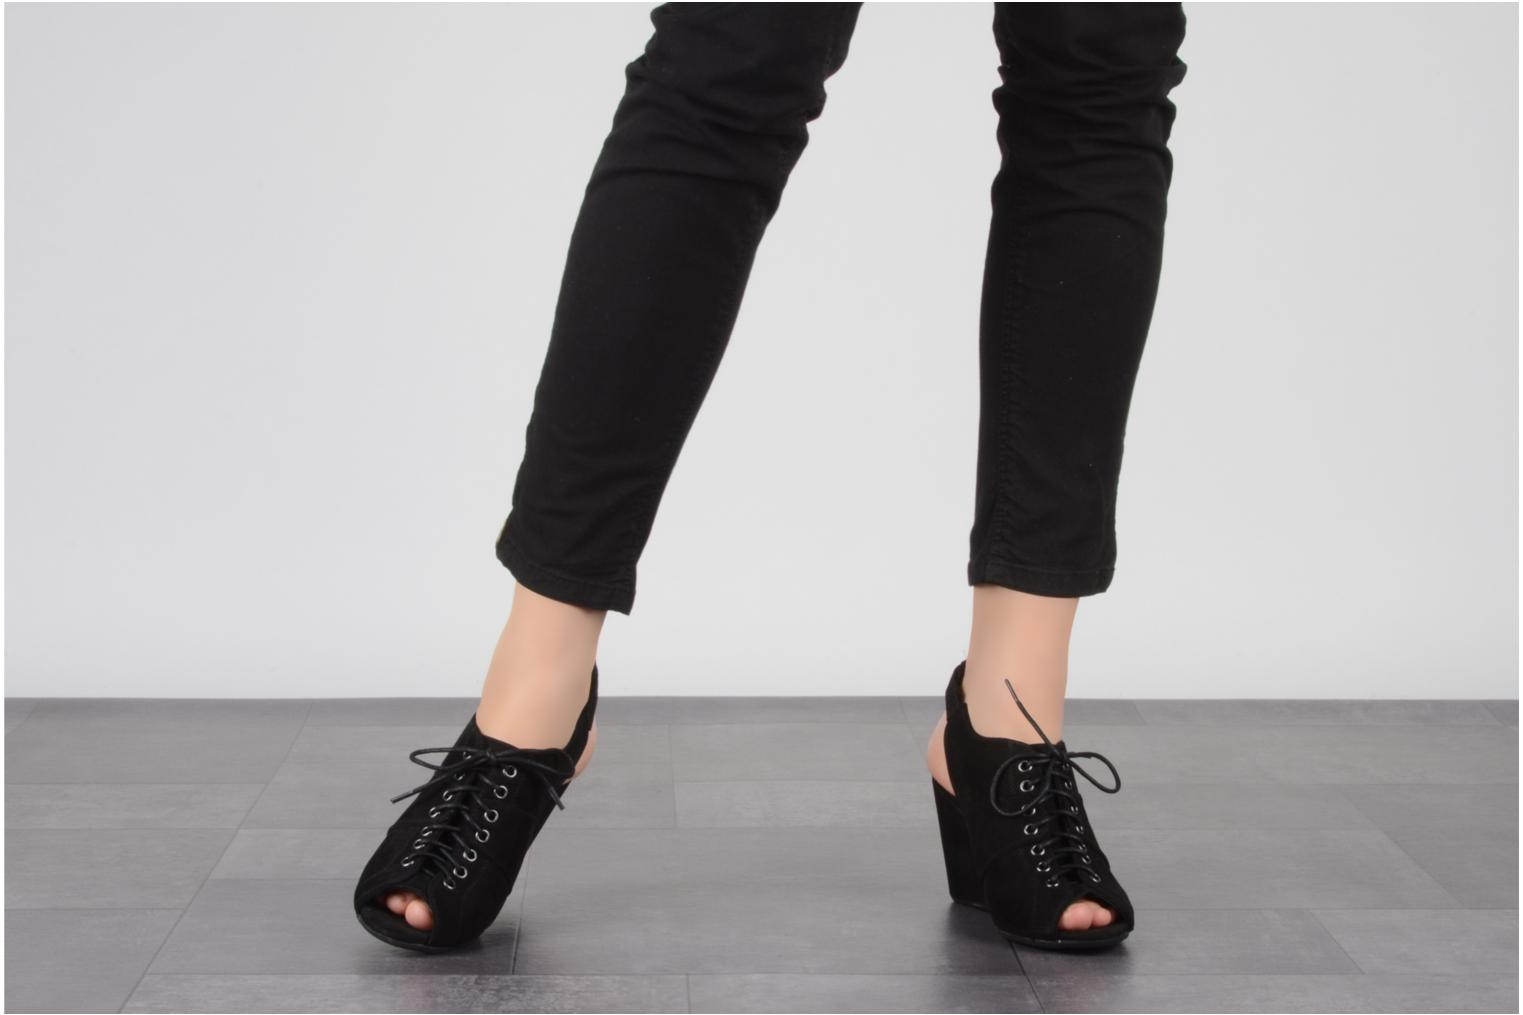 Diva open toe Black